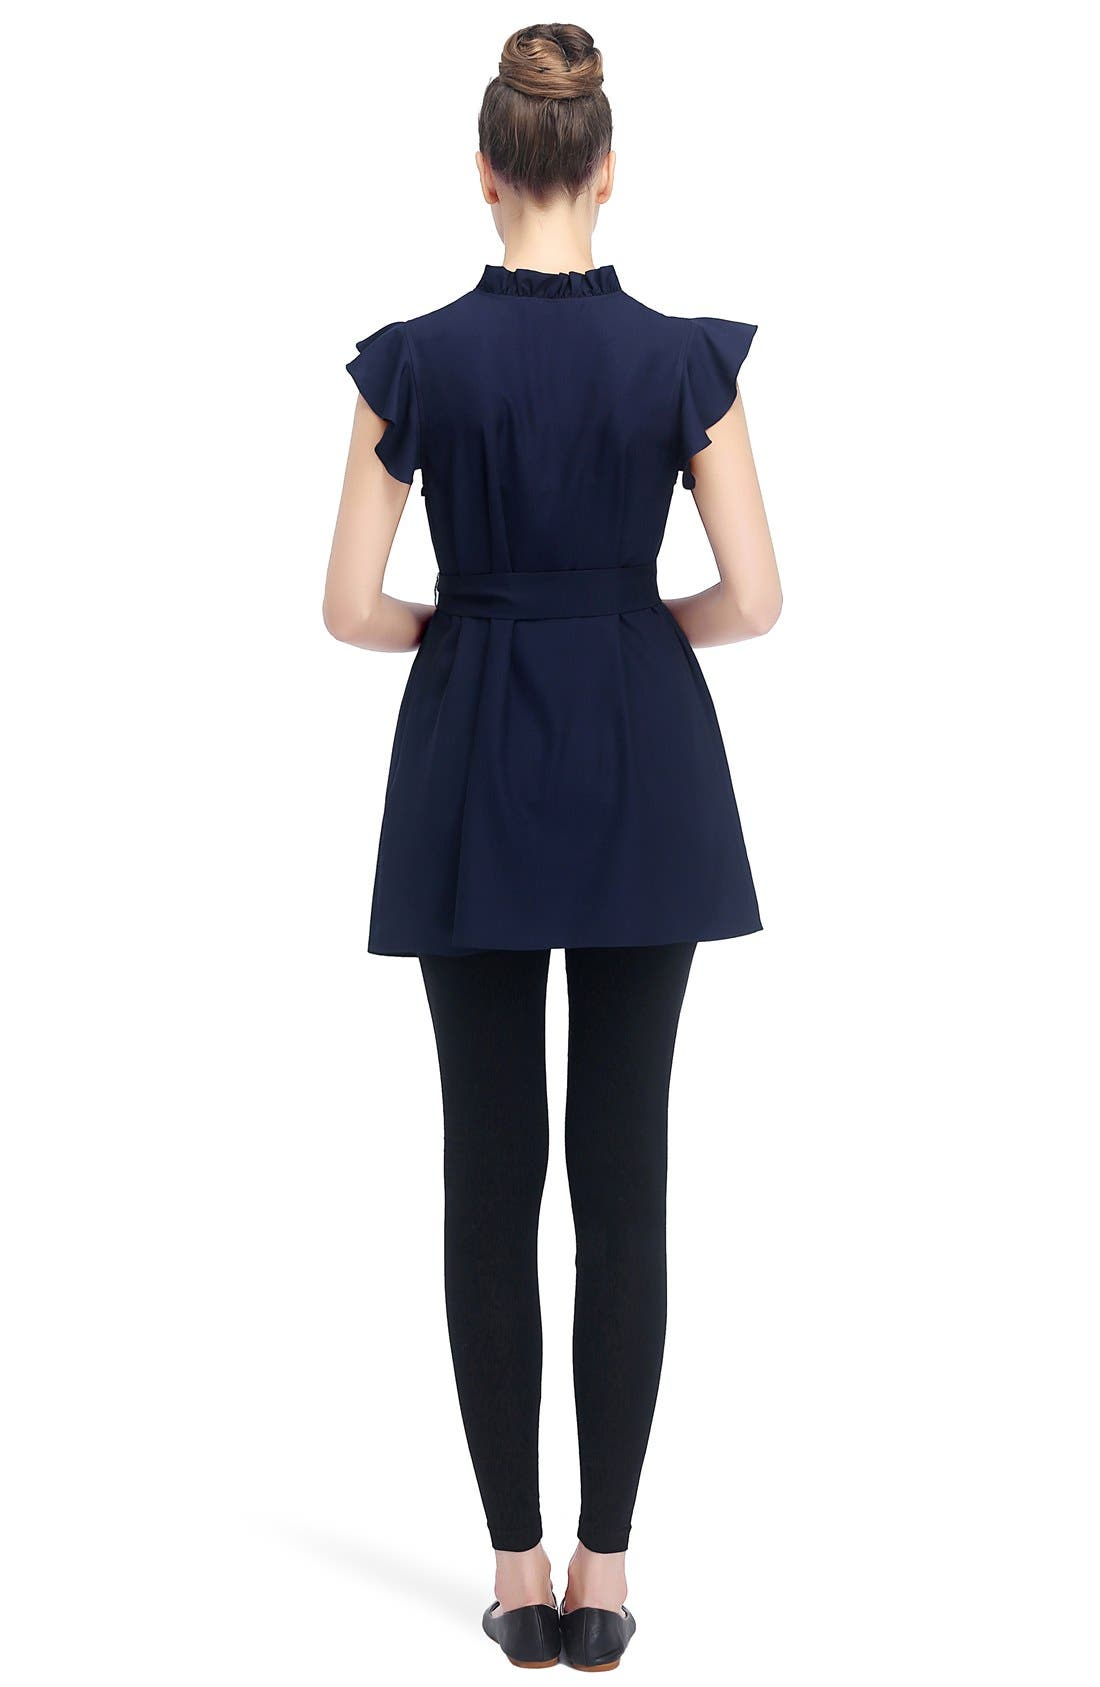 KIMI AND KAI, Karlena Flutter Sleeve Belted Maternity Top, Alternate thumbnail 2, color, NAVY